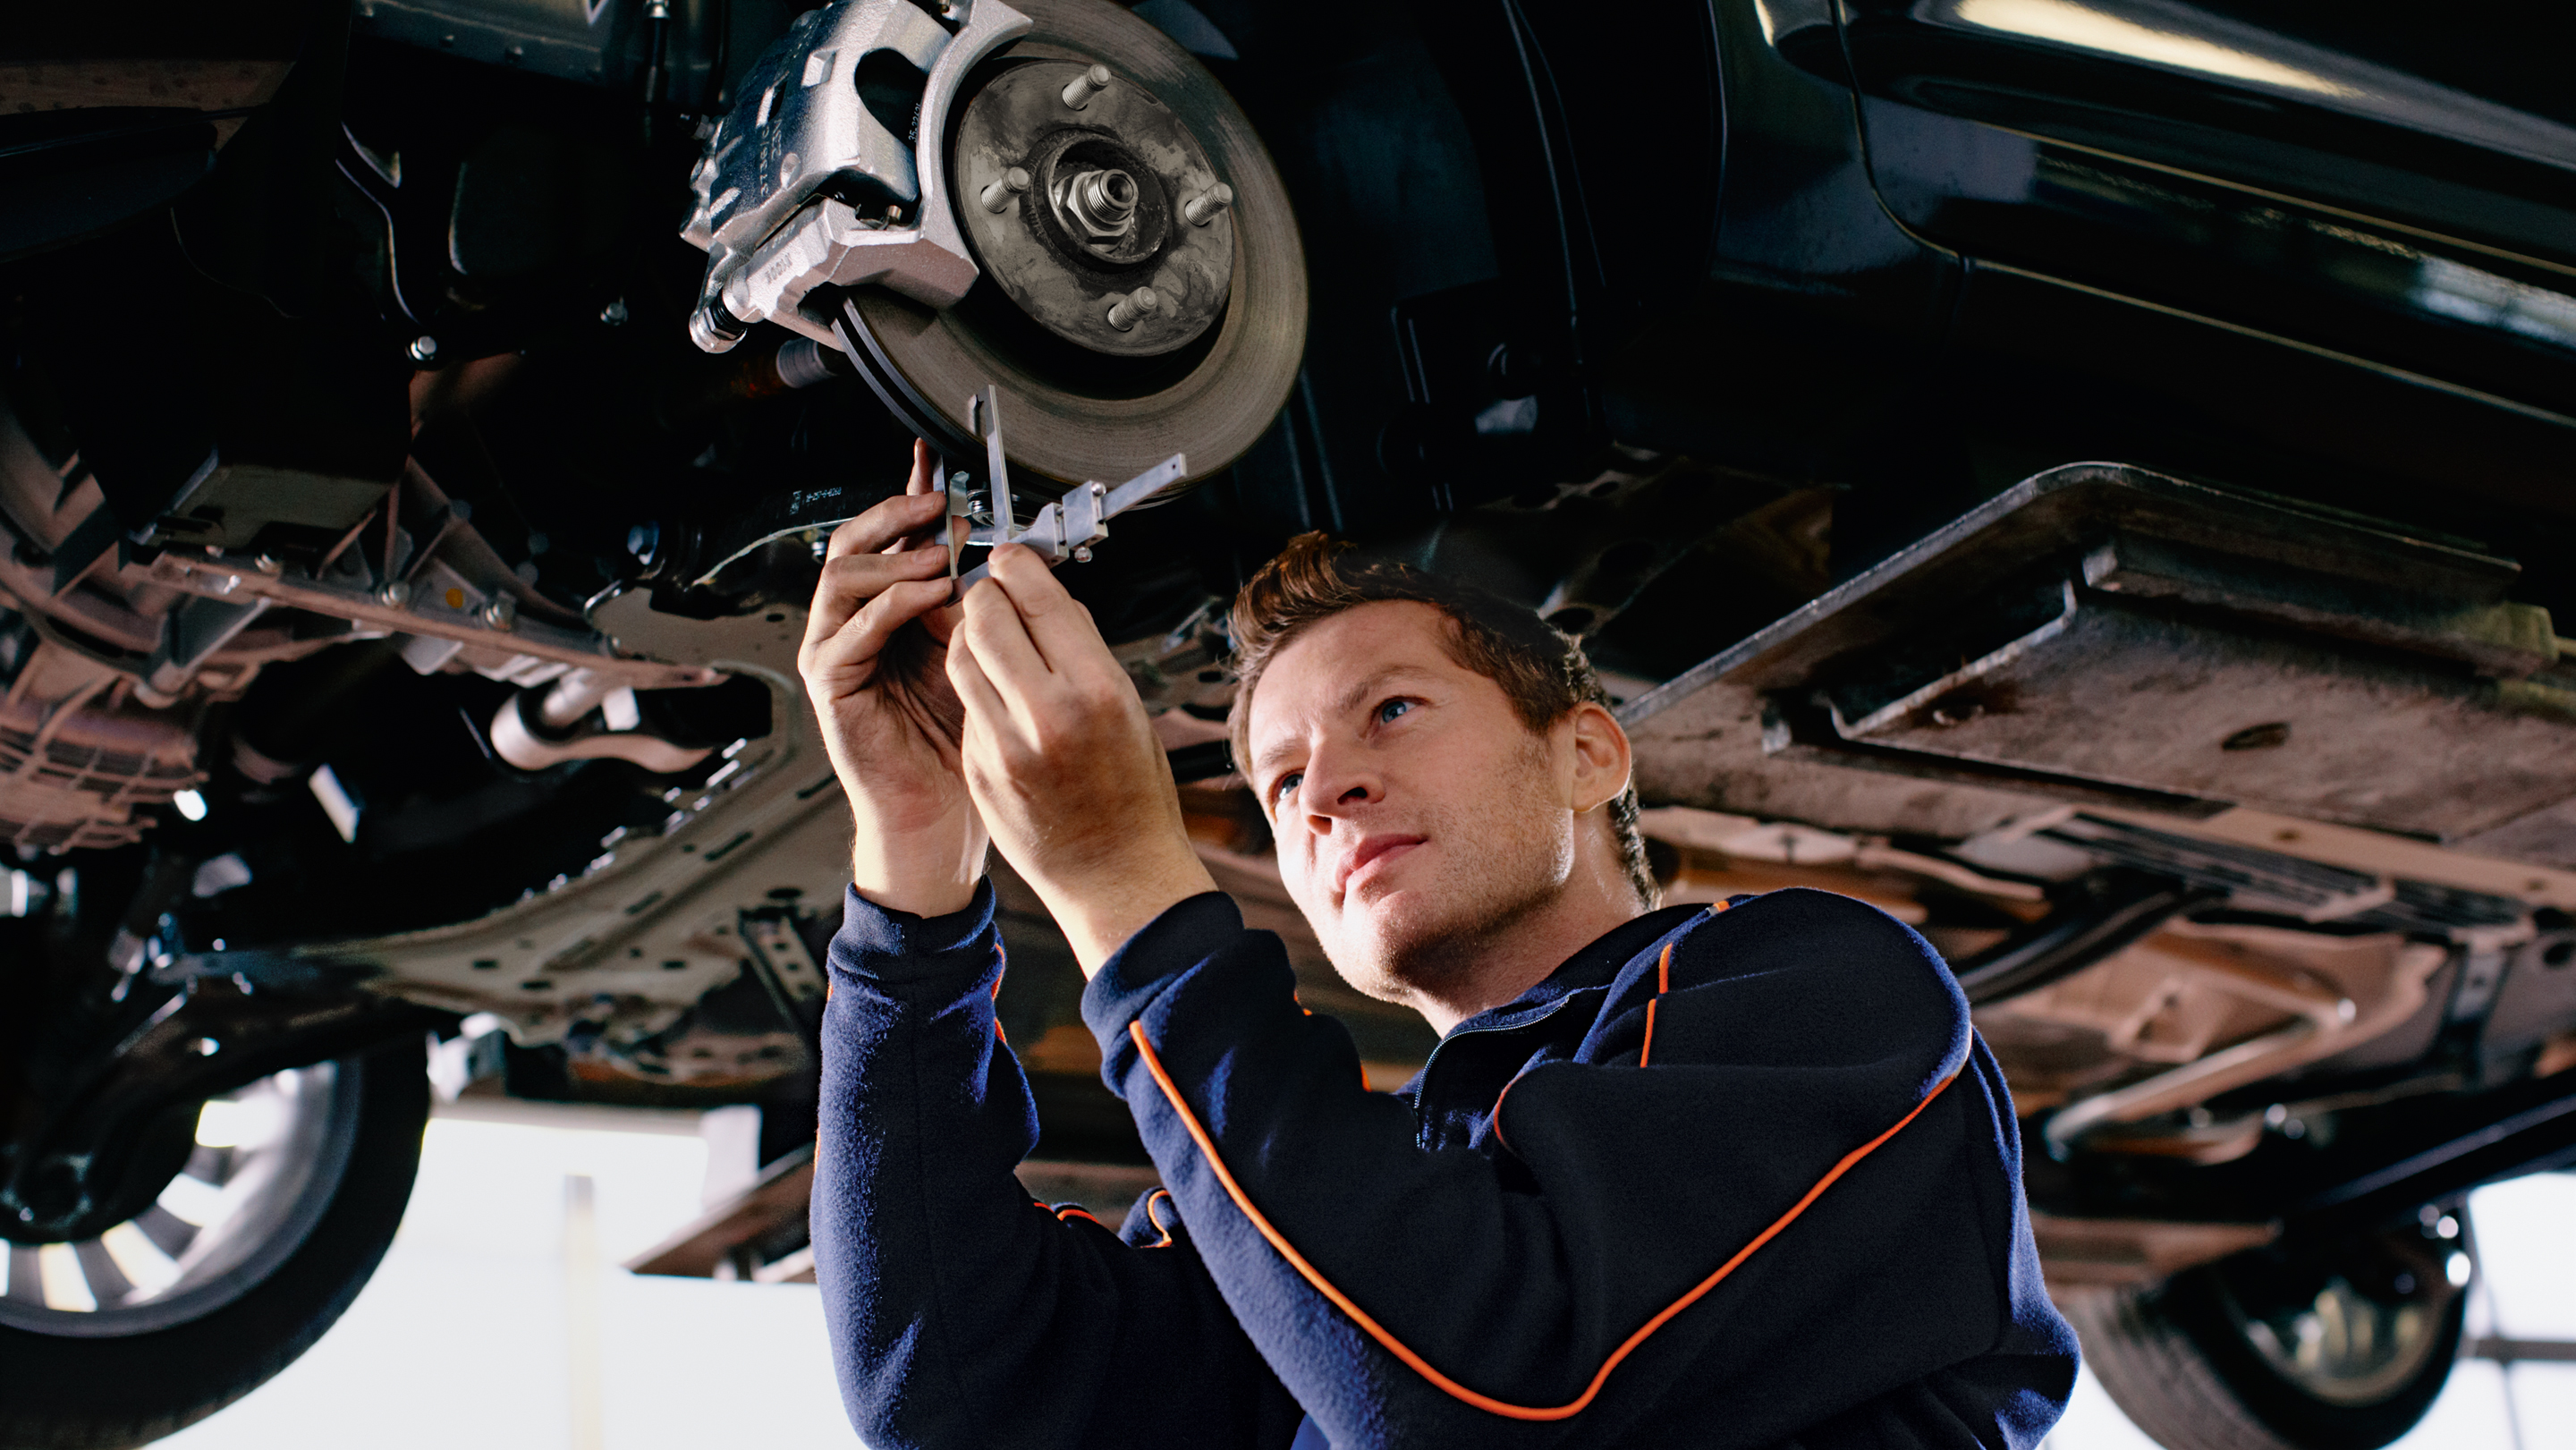 Quick Lane Car Service Auto Repair Oil Change And More